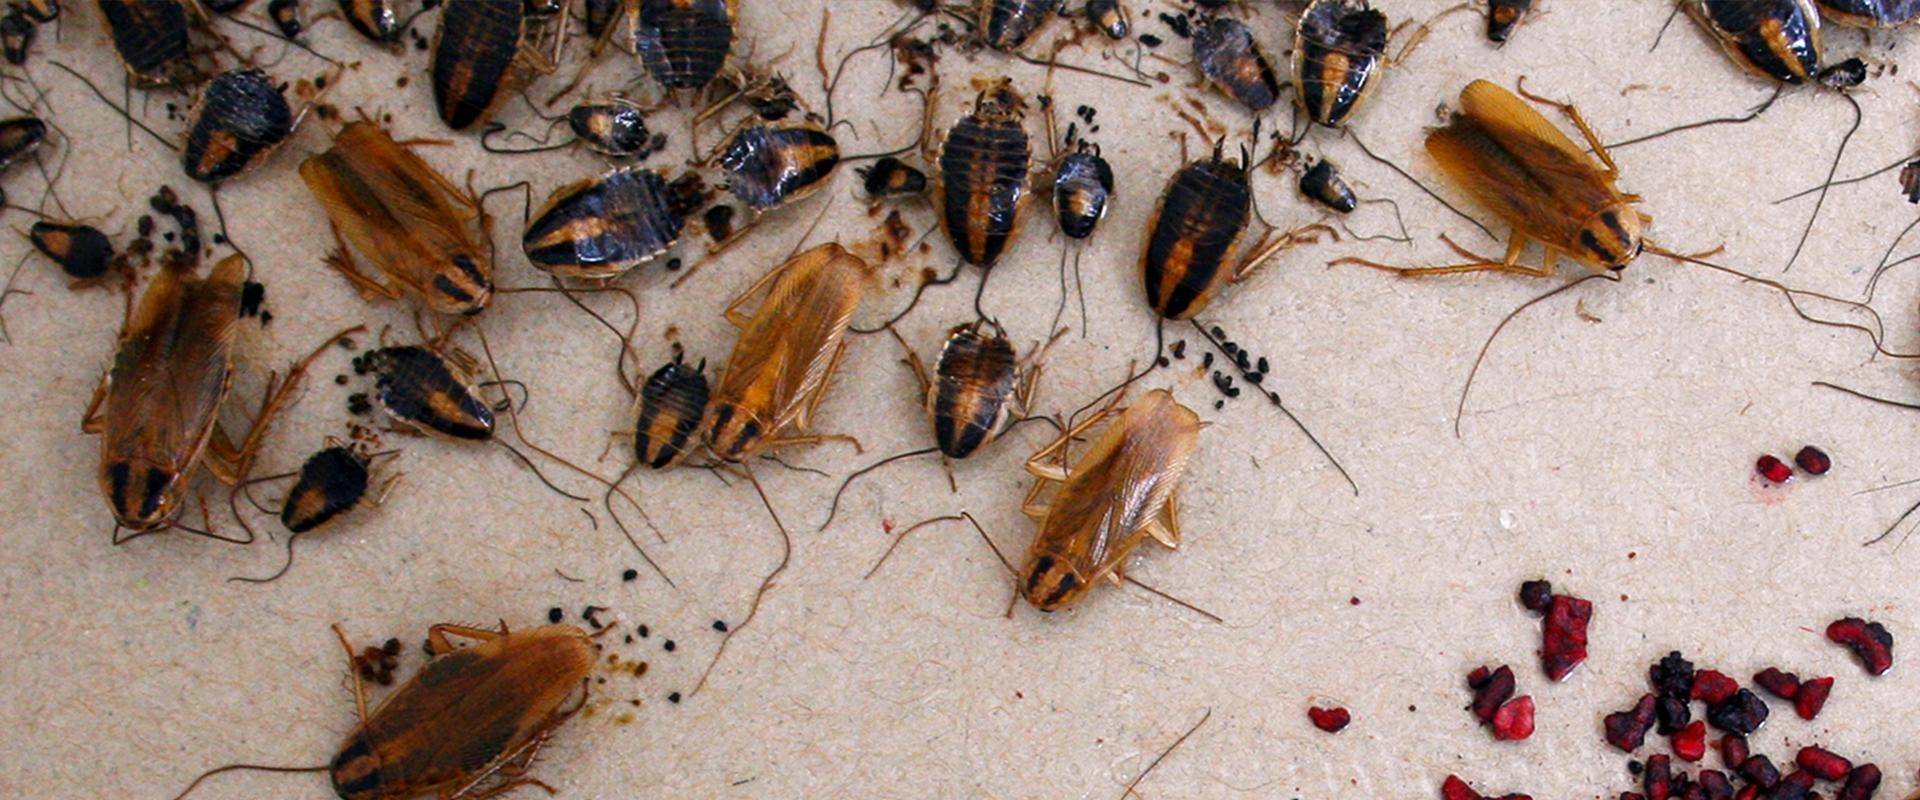 cockroaches on glue board